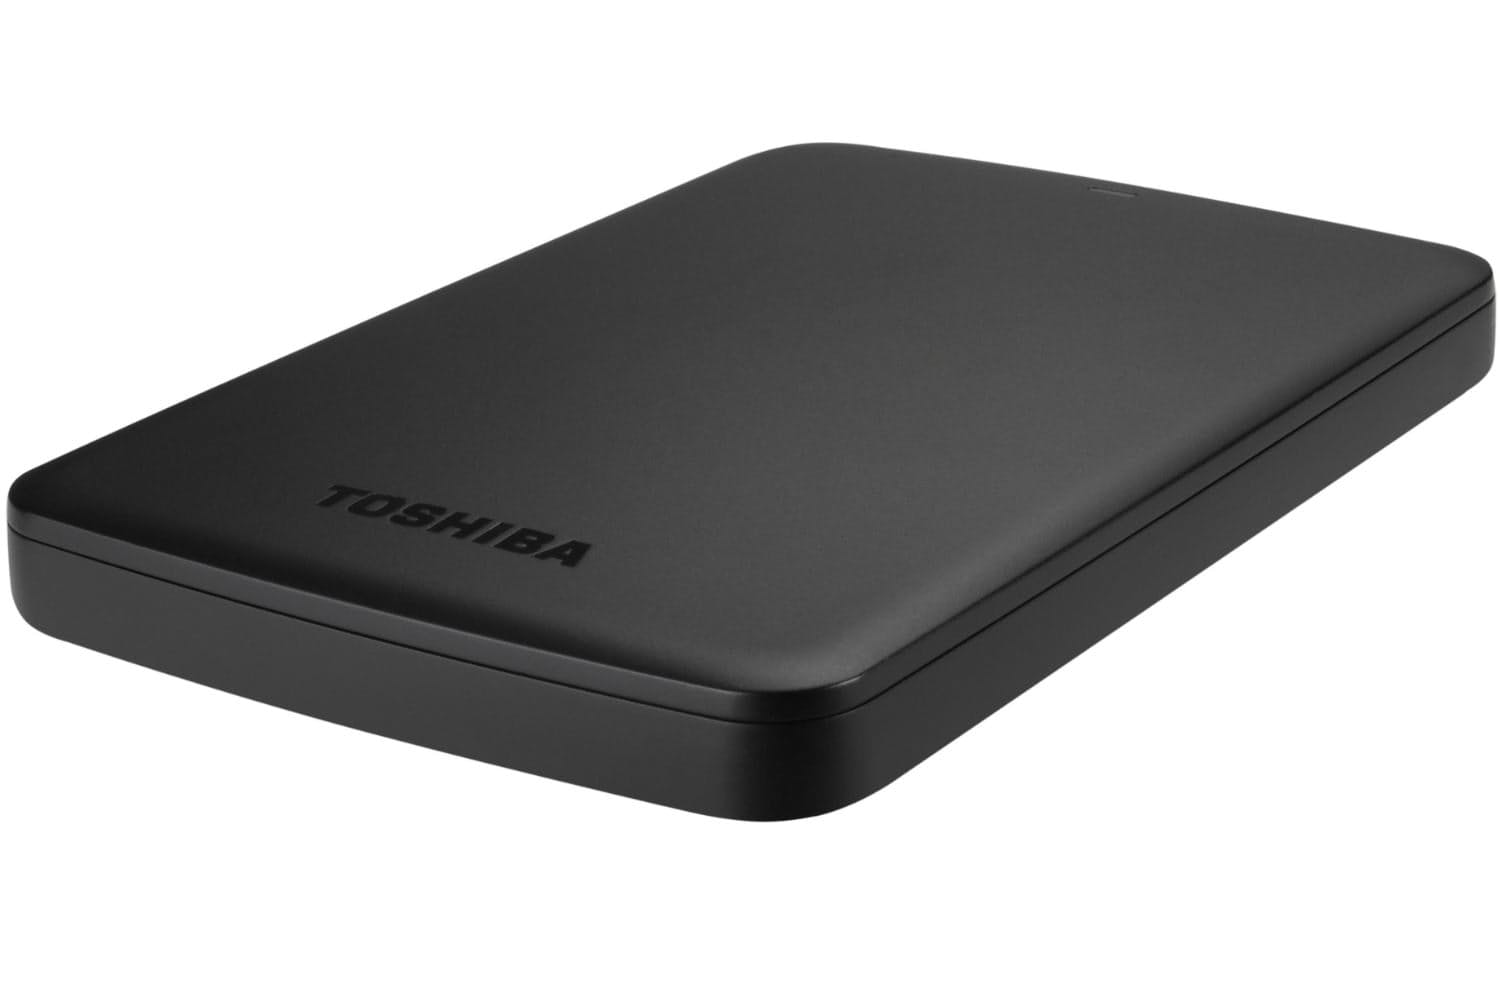 Toshiba Canvio Basics Portable Hard Drive | 500GB